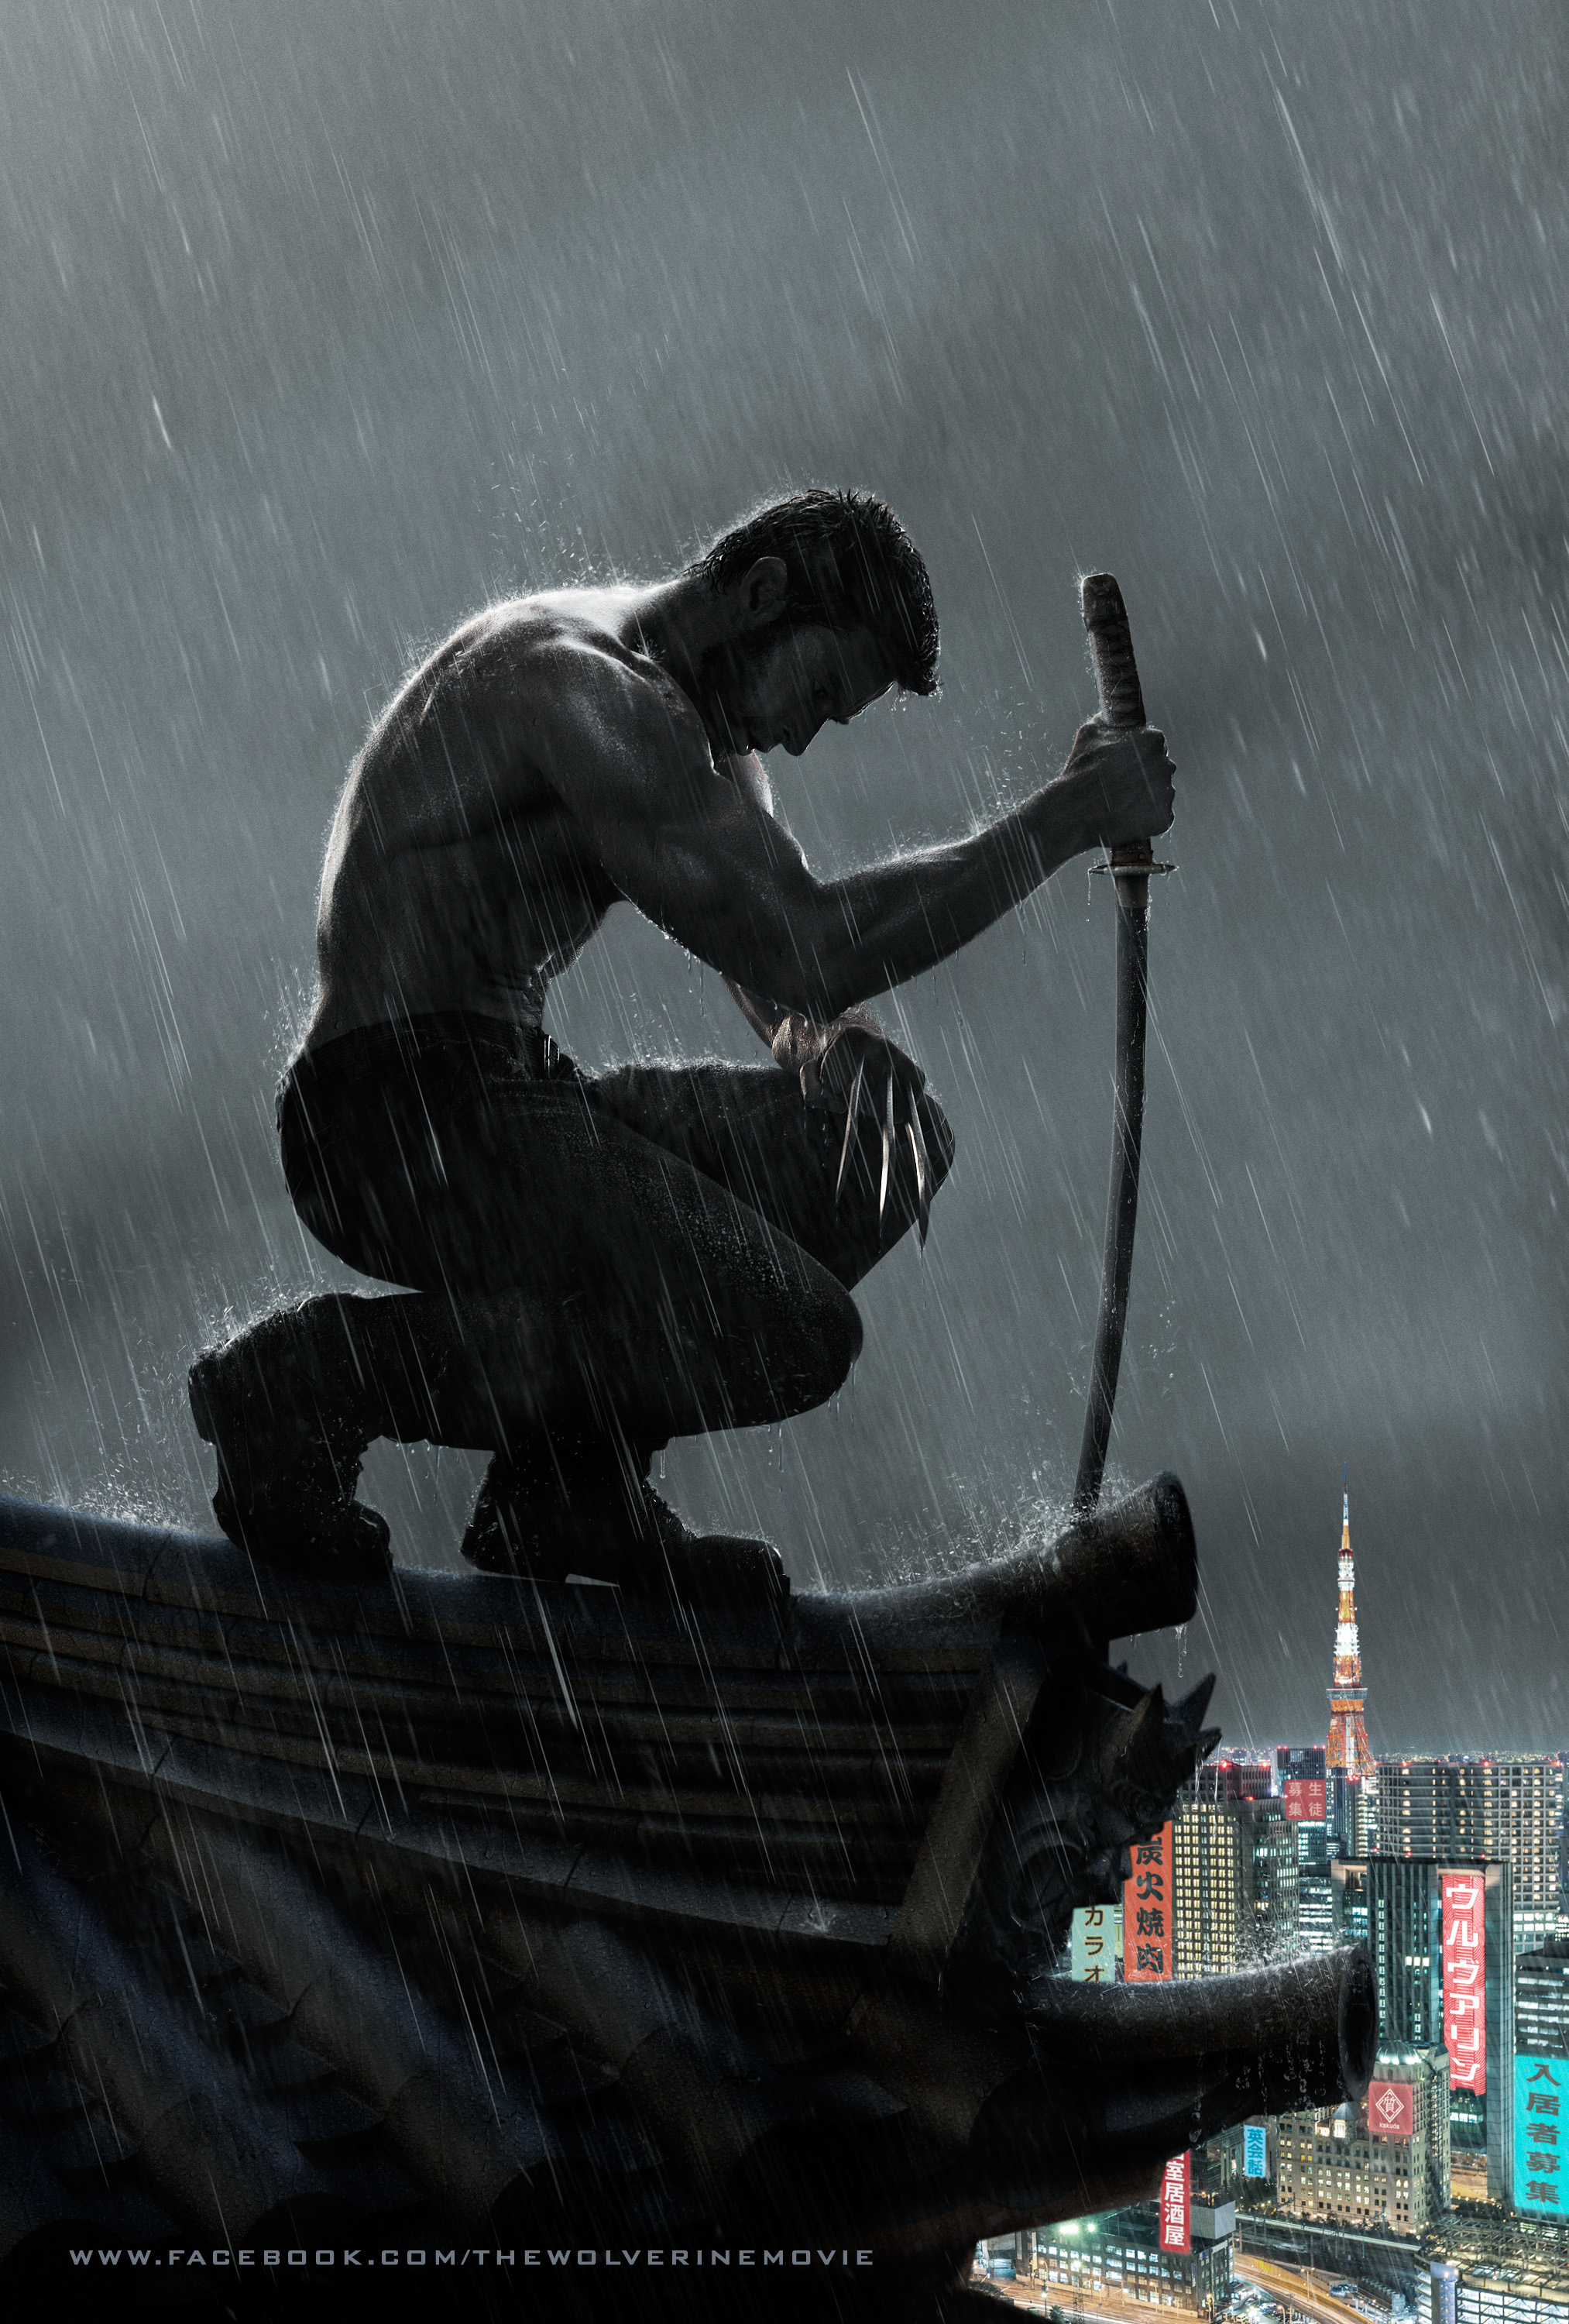 The Wolverine likes to stand in the rain.